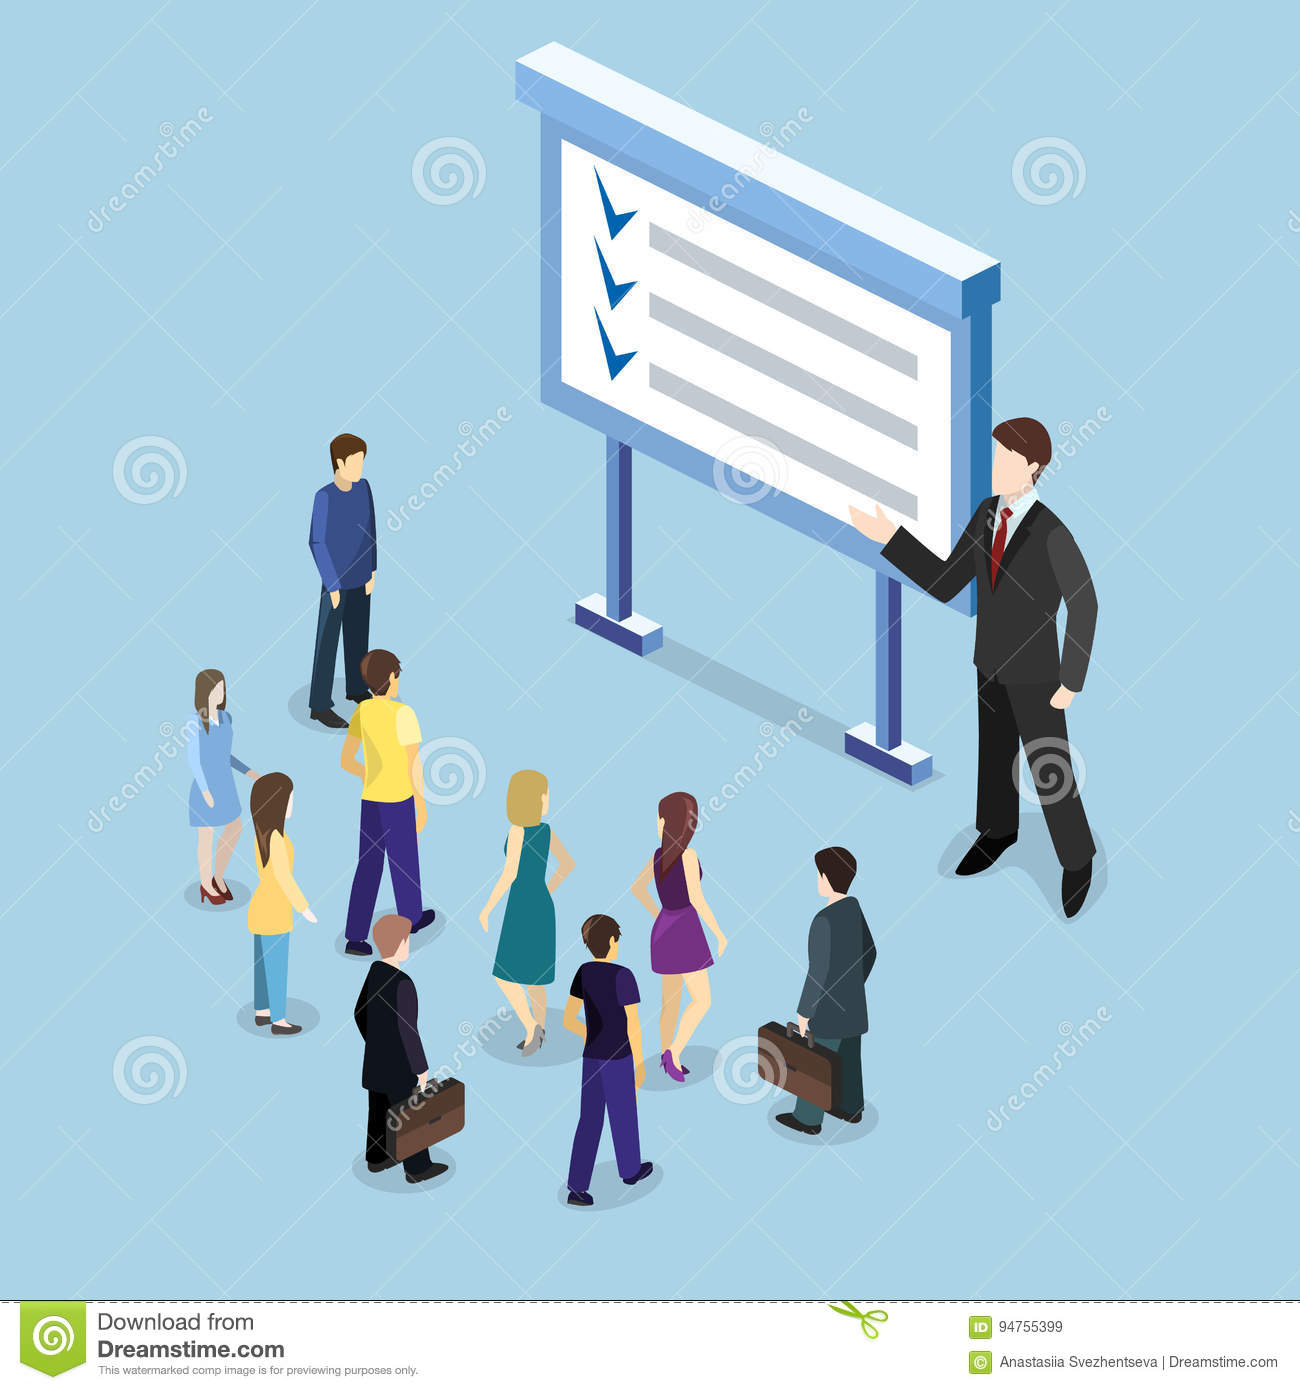 Exhibition Stand Vector : Isometric flat d concept vector exhibition or promotion